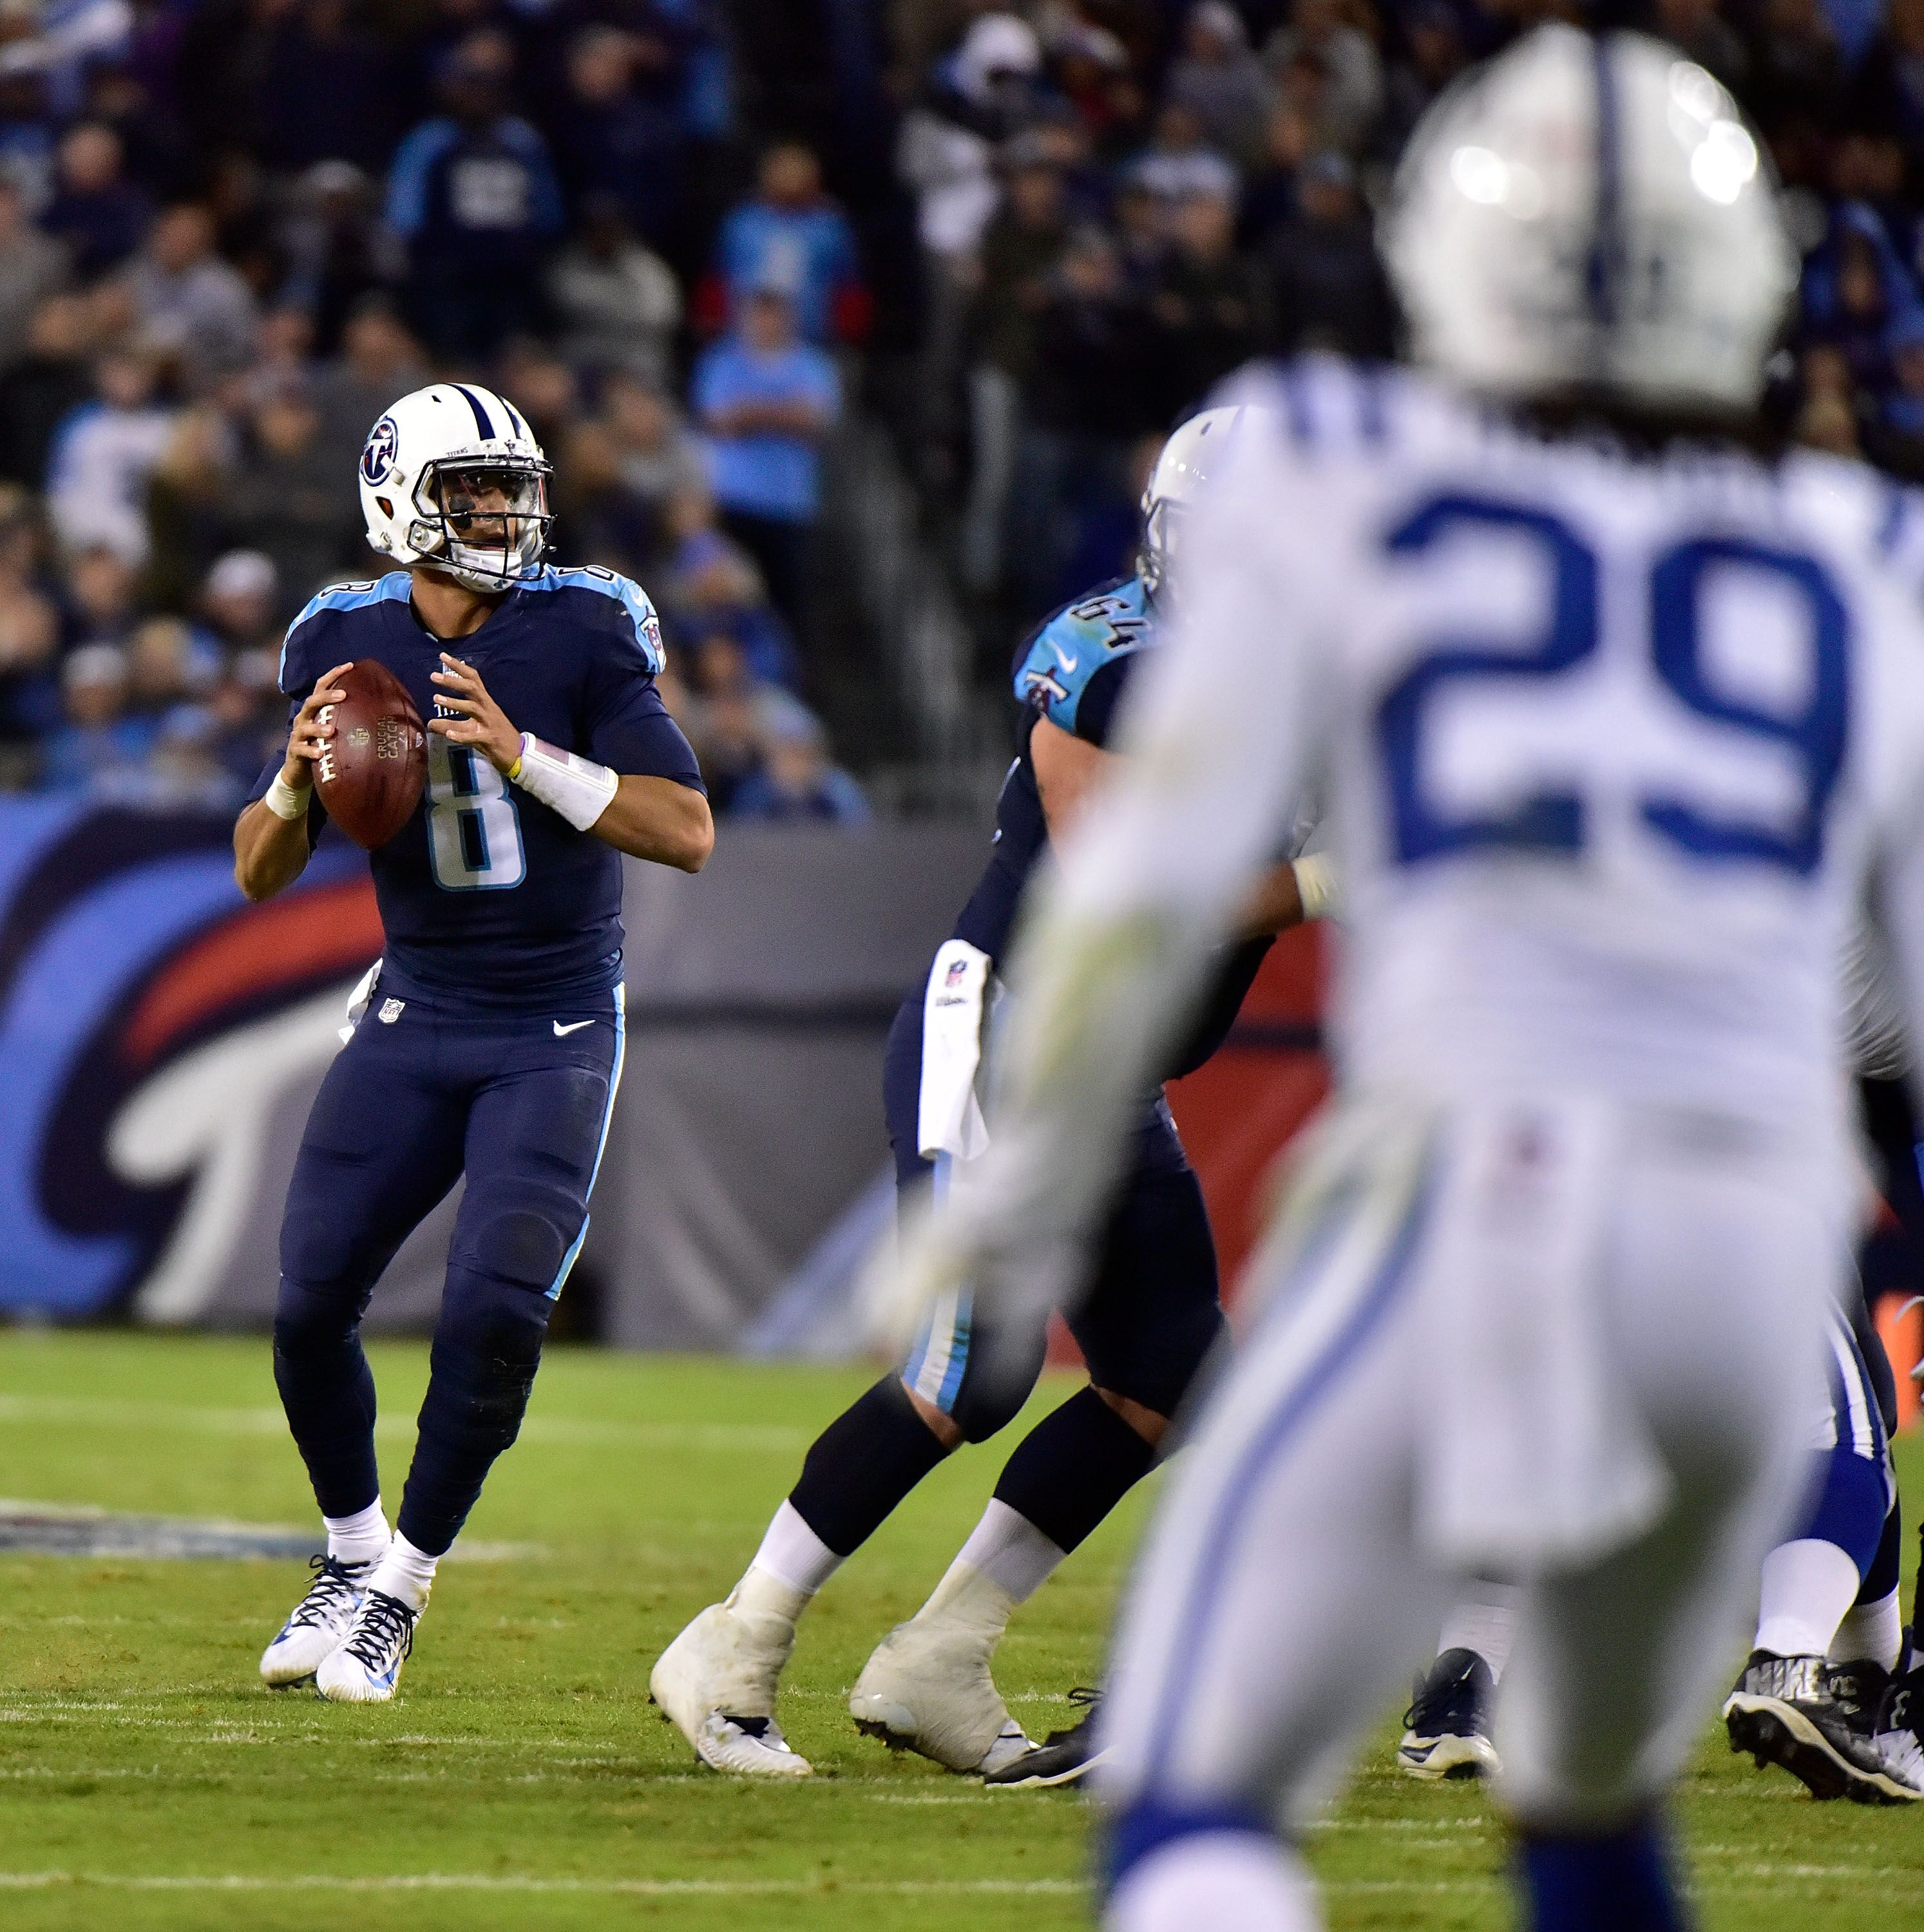 862173352-indianapolis-colts-v-tennessee-titans.jpg